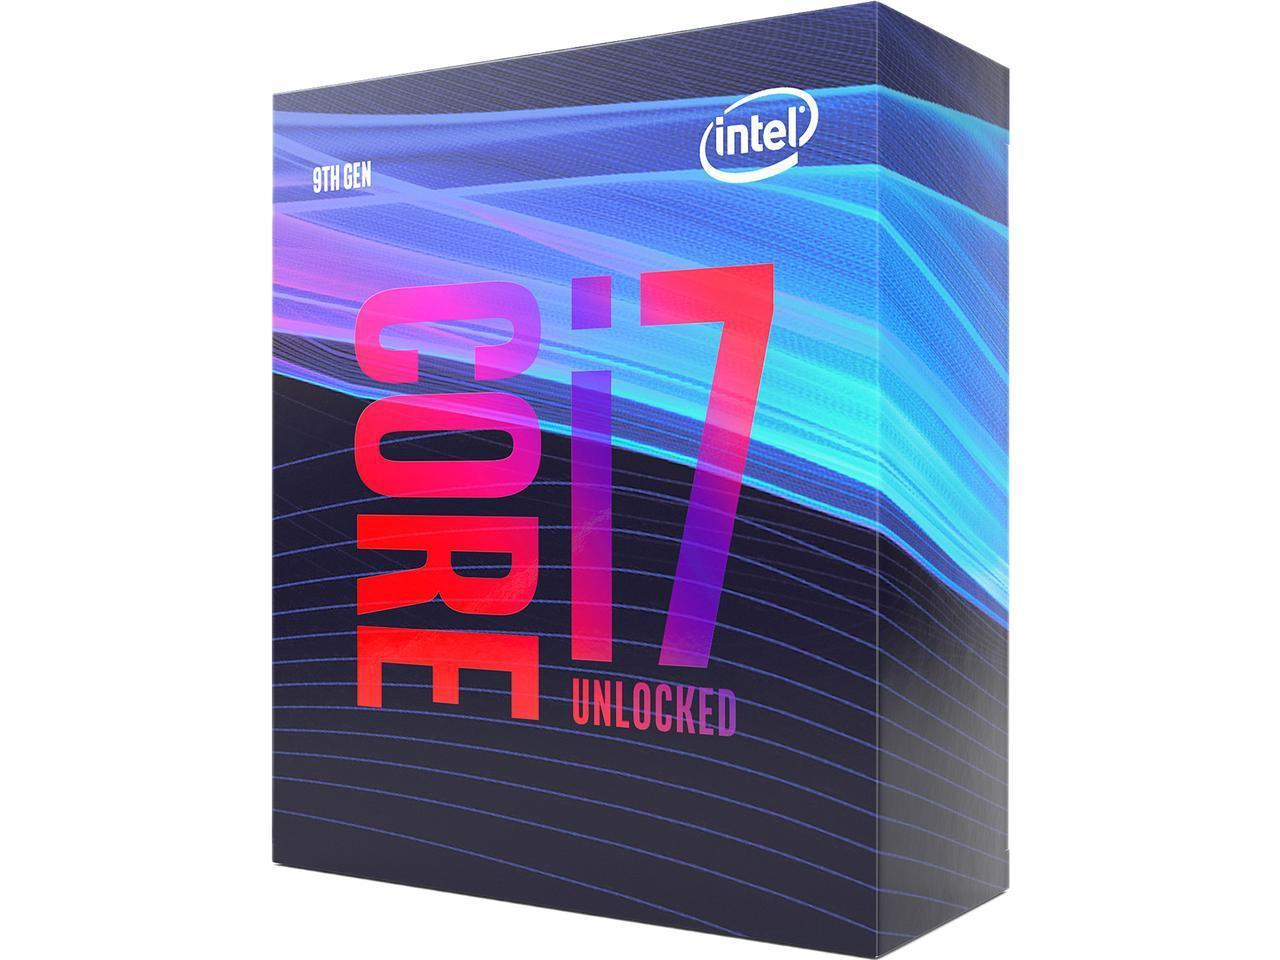 Процесор Intel Coffee Lake Core i7-9700K 3.60GHz (up to 4.90GHz), 12MB, 95W,  LGA1151 (300 Series)-2